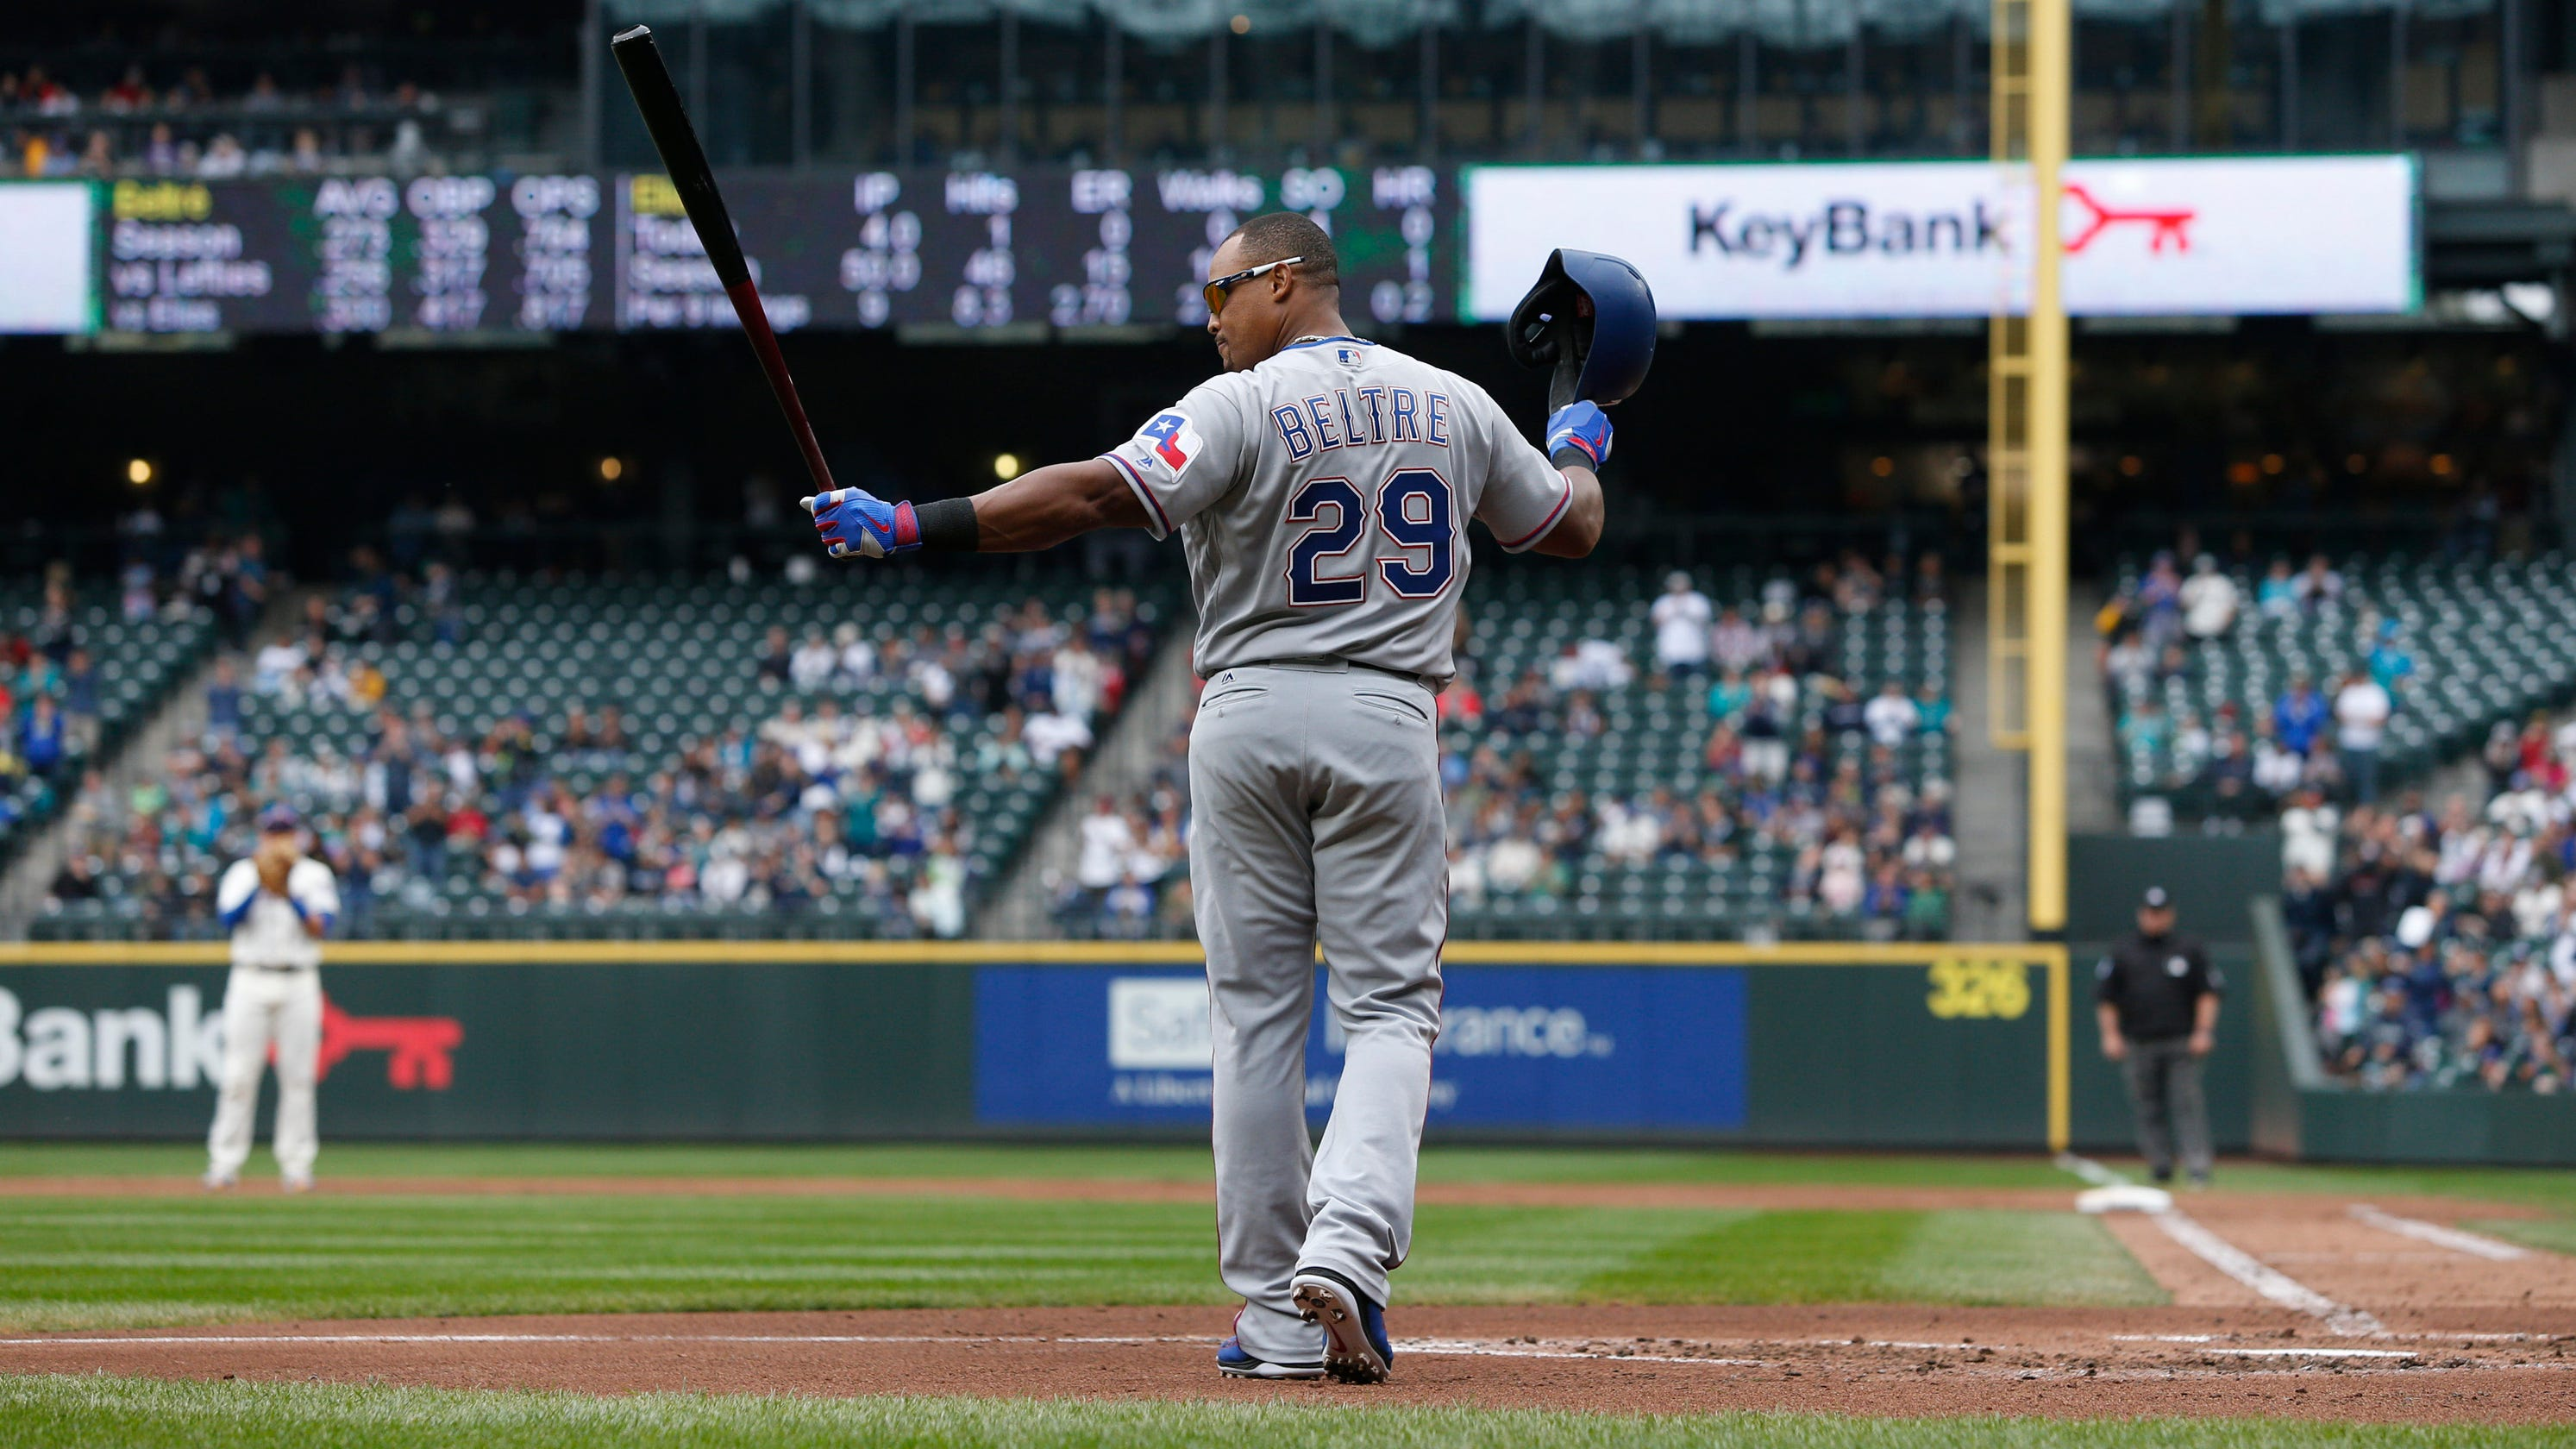 Usp Mlb Texas Rangers Seattle Mariners Crop Width Height Fit Bounds Adrian Beltre Announces Retirement Year Career